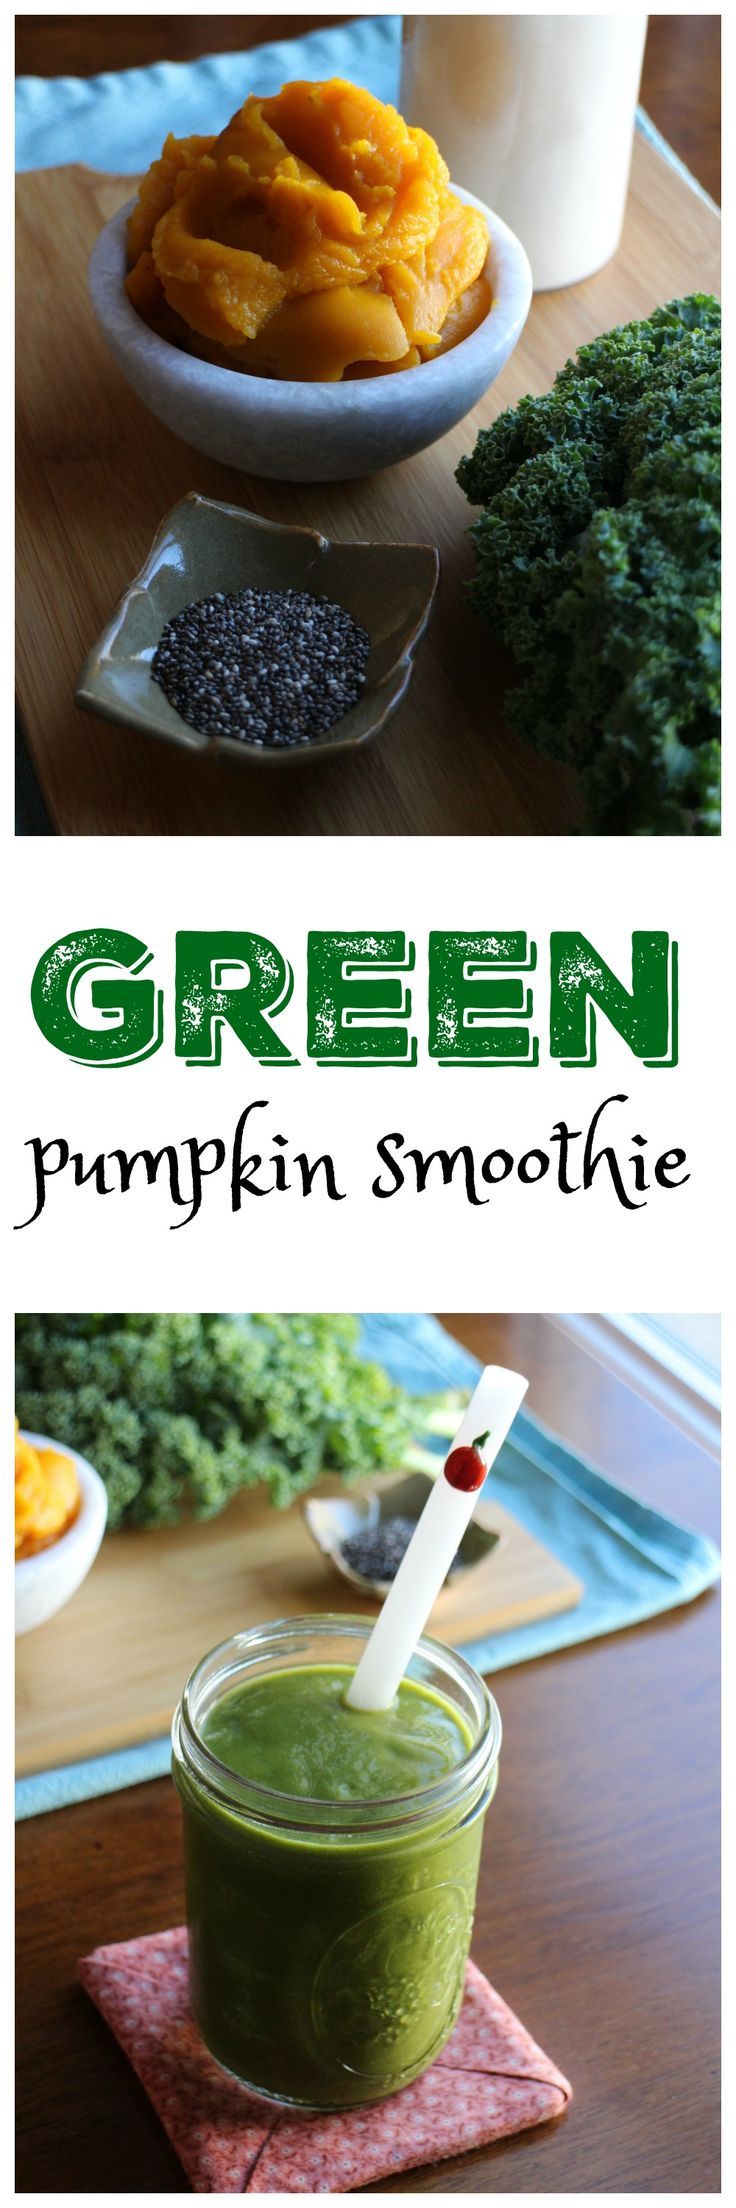 Green Pumpkin Smoothie: This autumnal vegan smoothie is packed with pumpkin, kale, bananas, and non-dairy milk. It's a delicious breakfast or anytime snack. | cadryskitchen.com